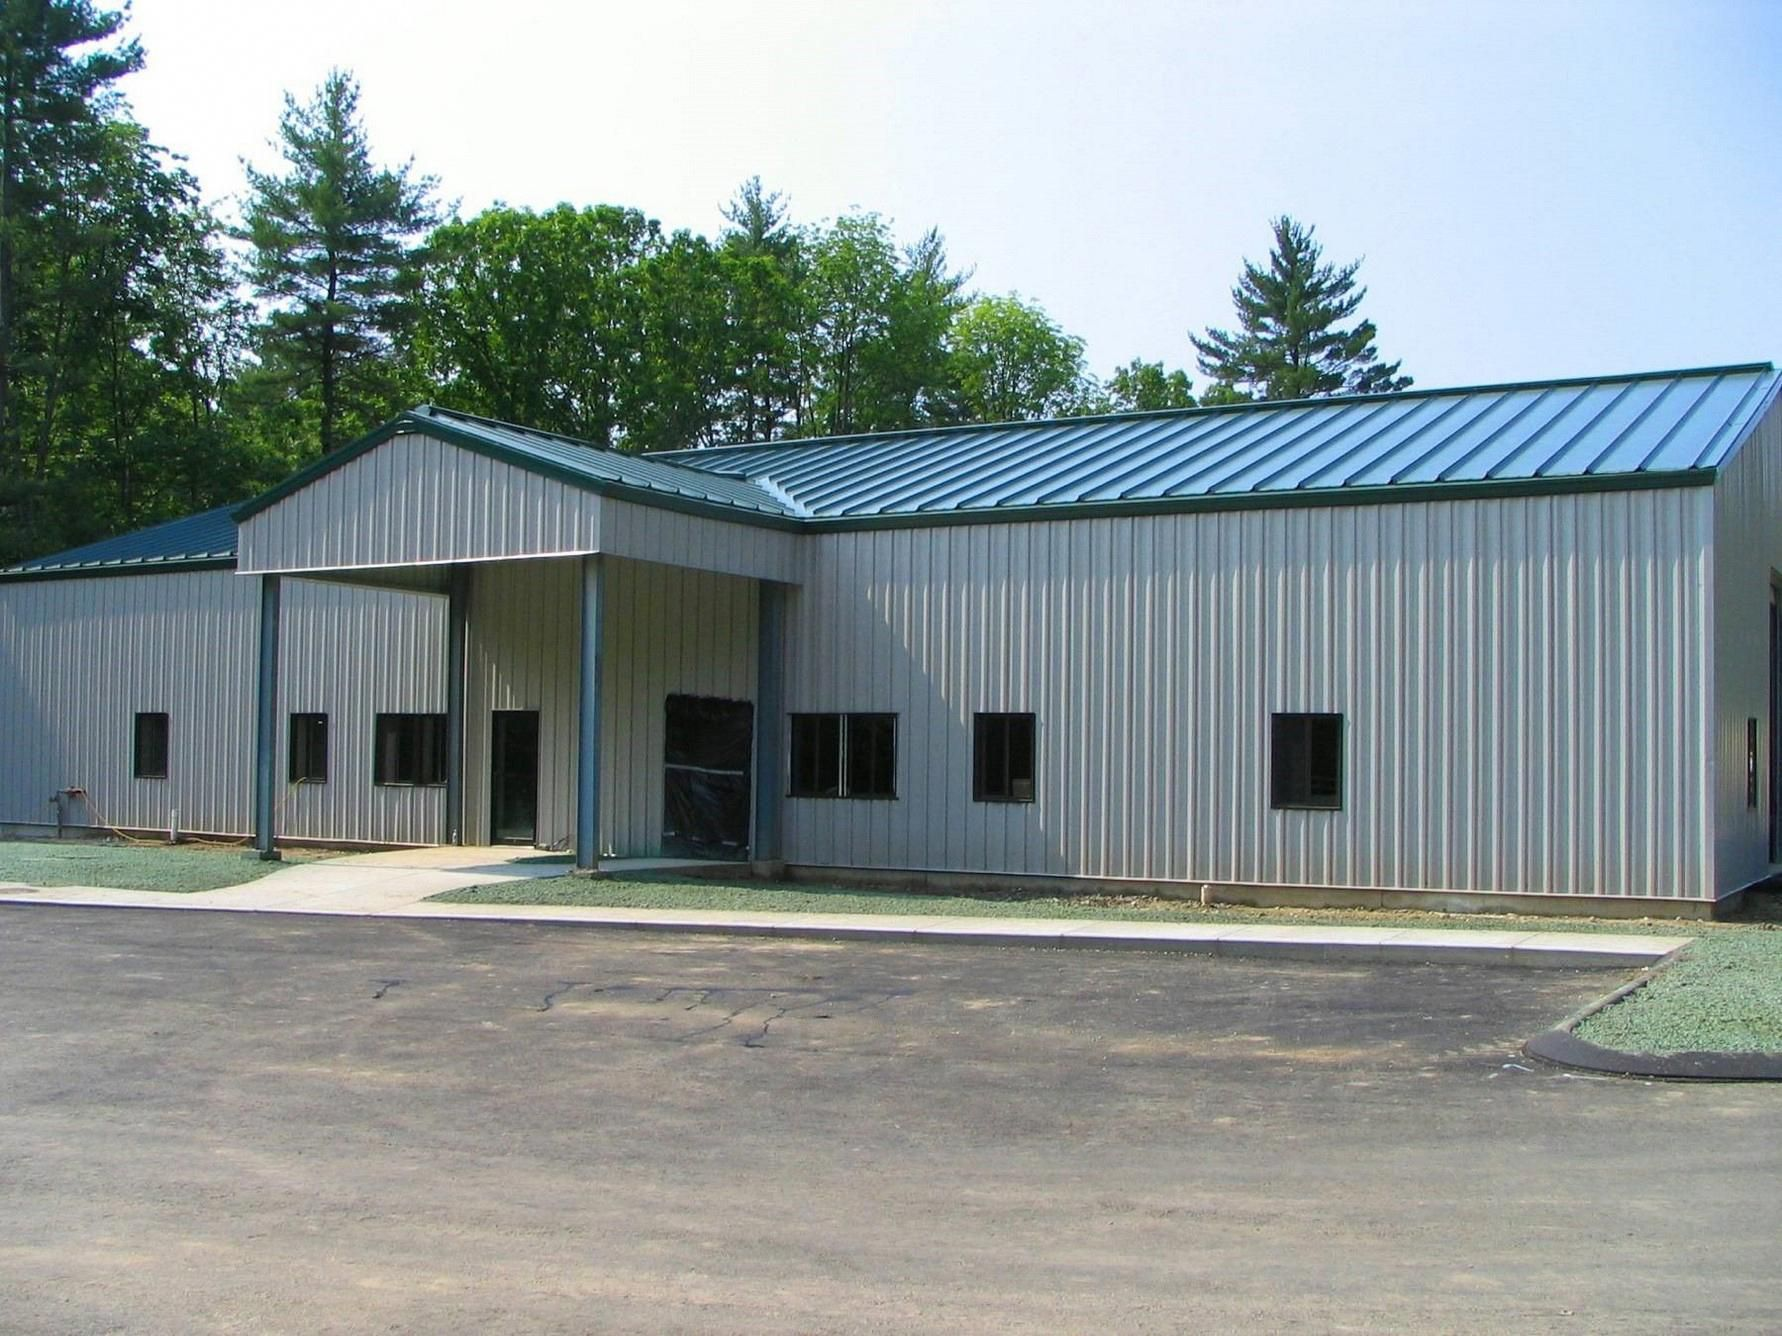 See These Metal Buildings With Carport Attachments